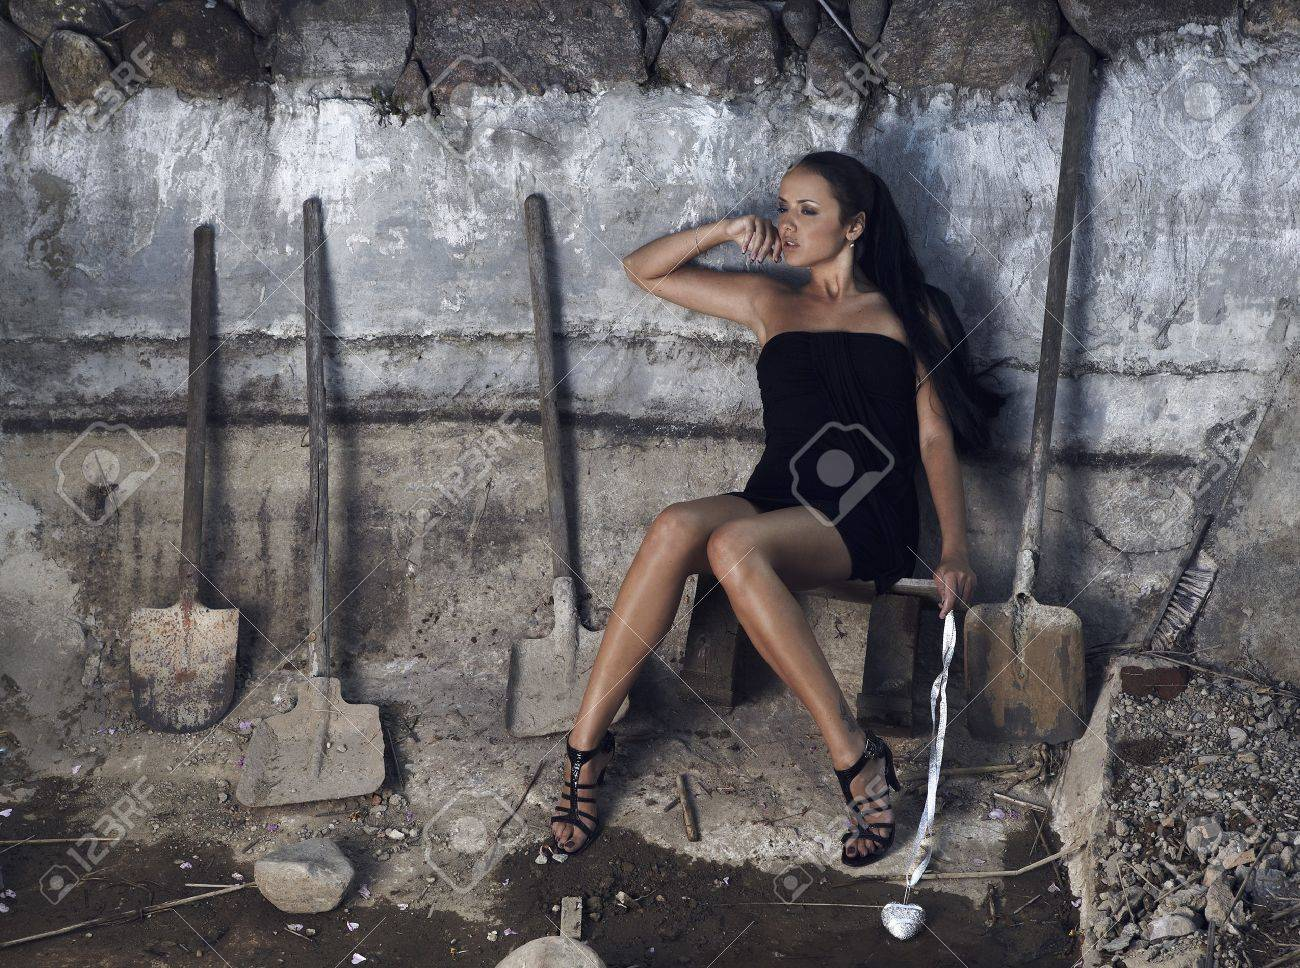 Sexual girl in black dress inside stone quarry among old shovels. Photo. Stock Photo - 7395988